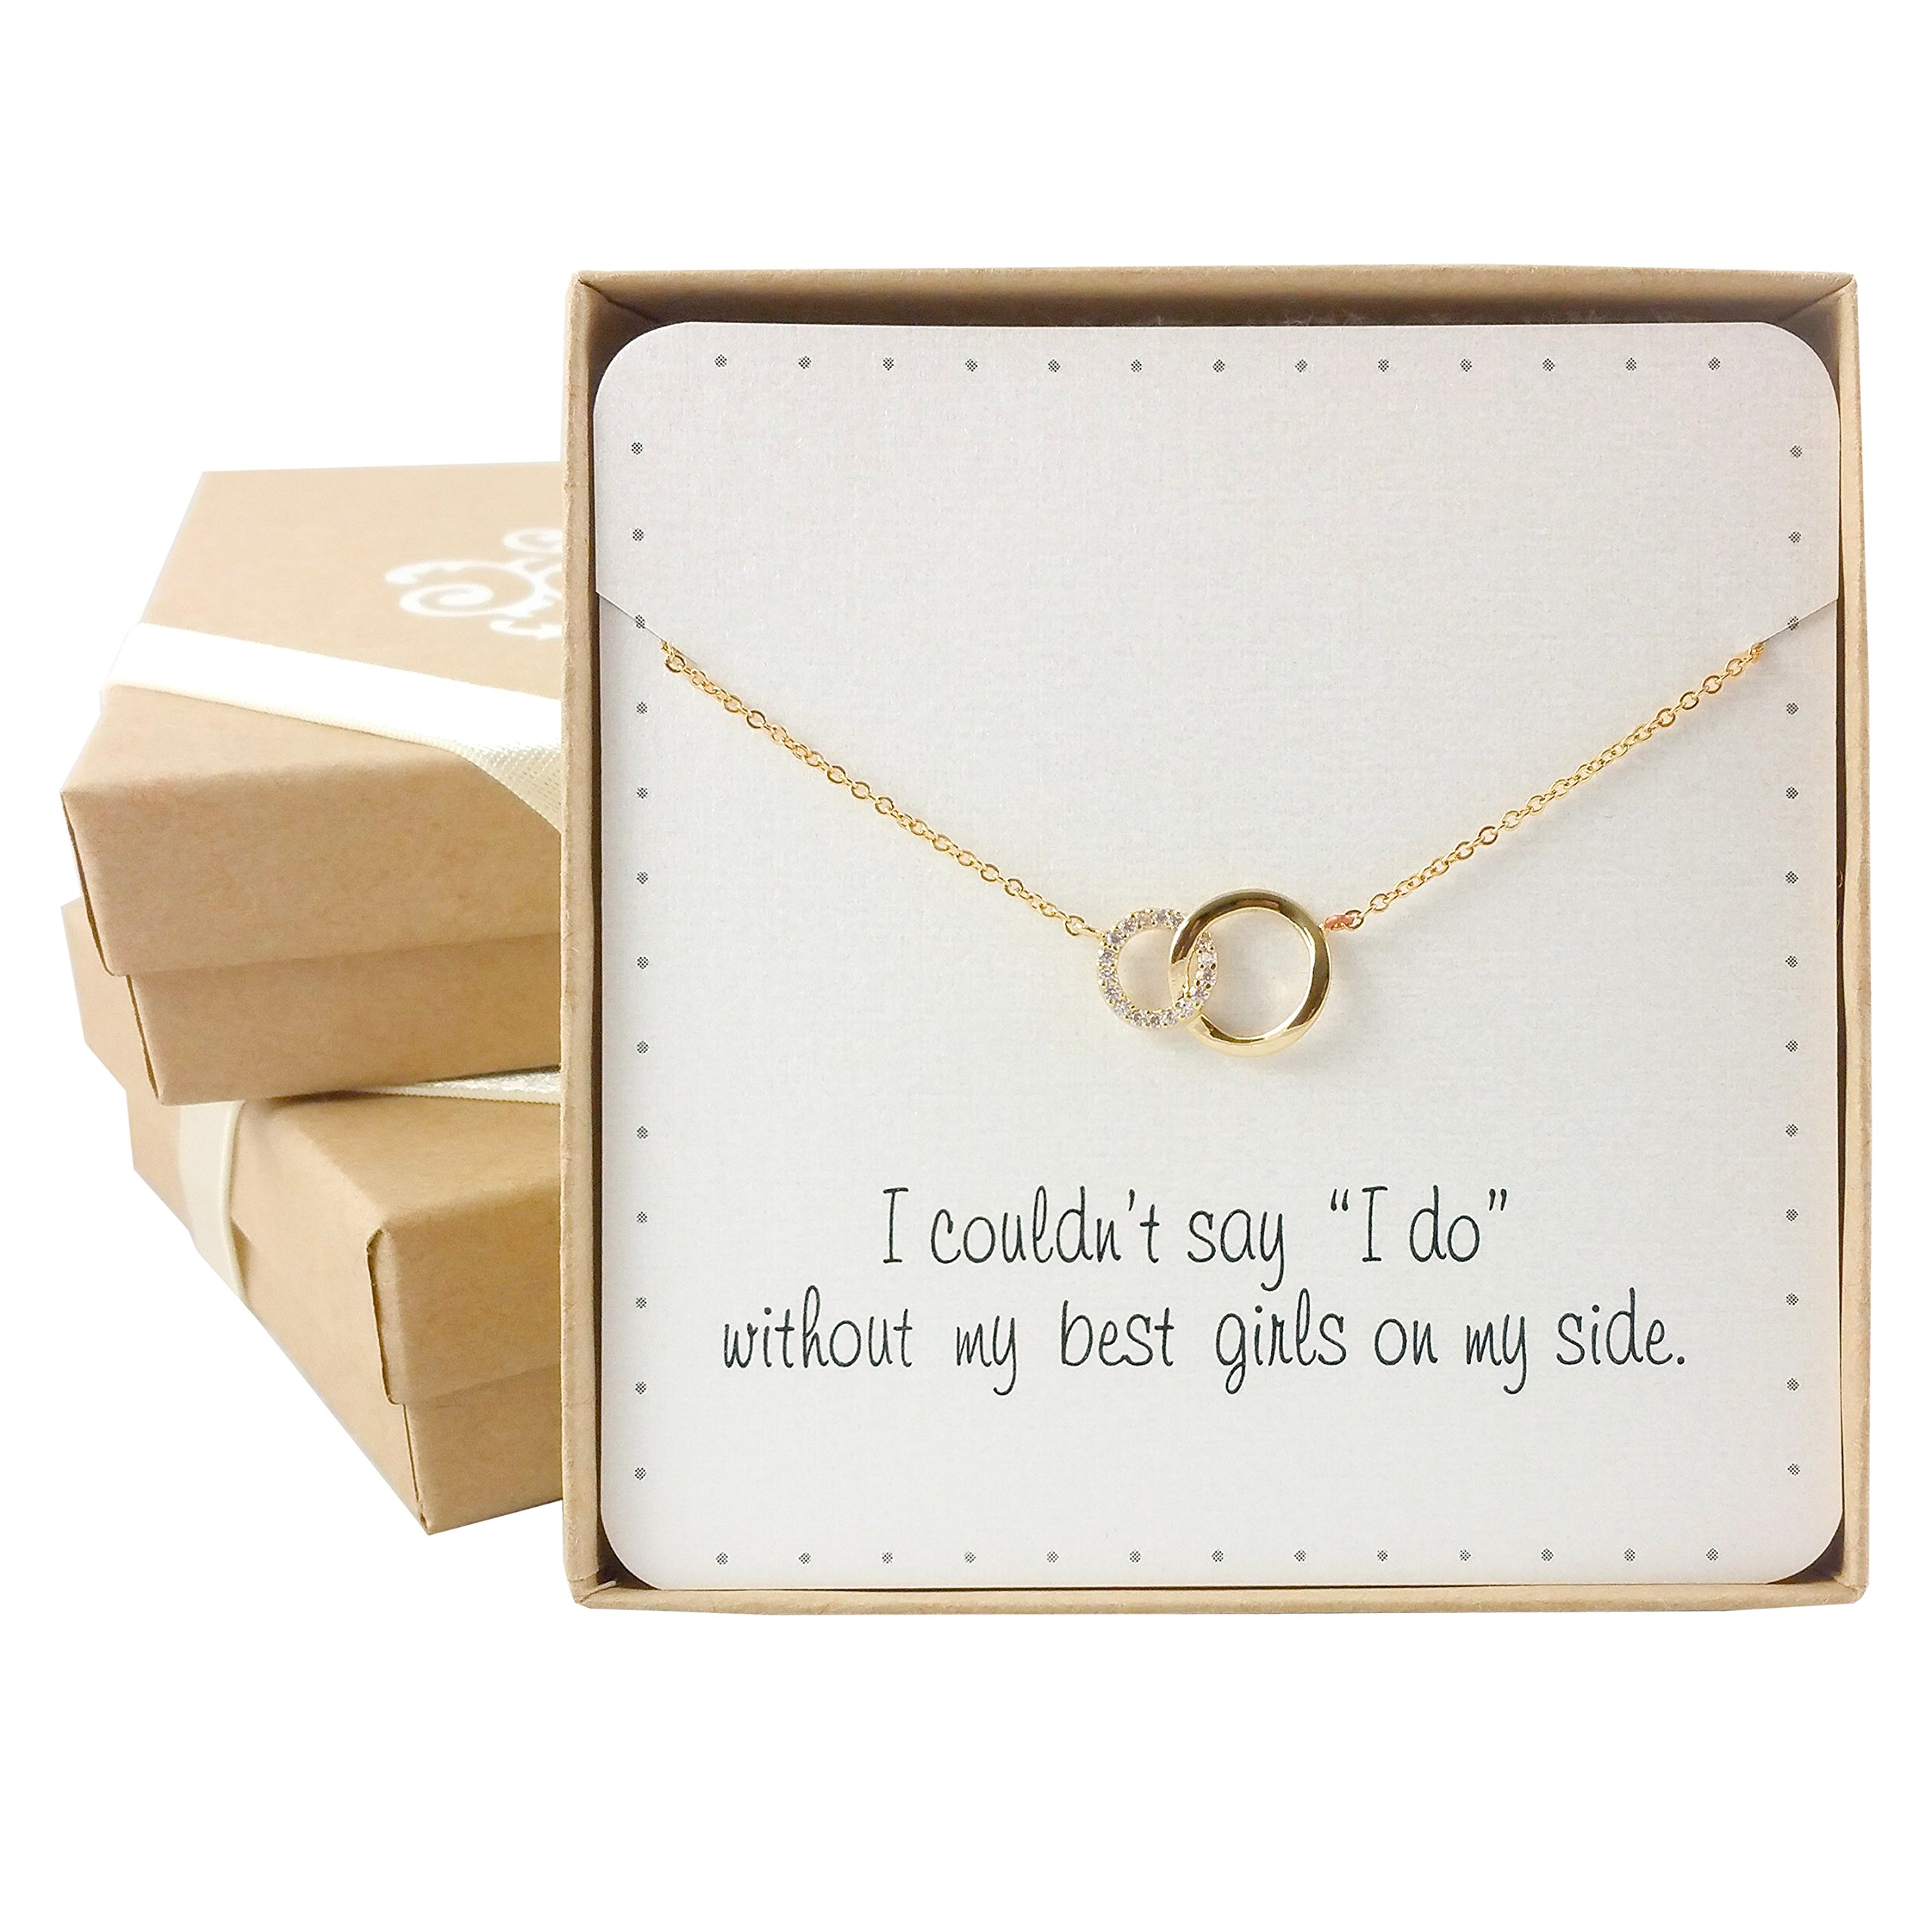 Bridesmaid Gifts- Delicate Infinity Interlocking Circles Necklace (16'', 24K Gold Plated, Pave CZ), Set of 7